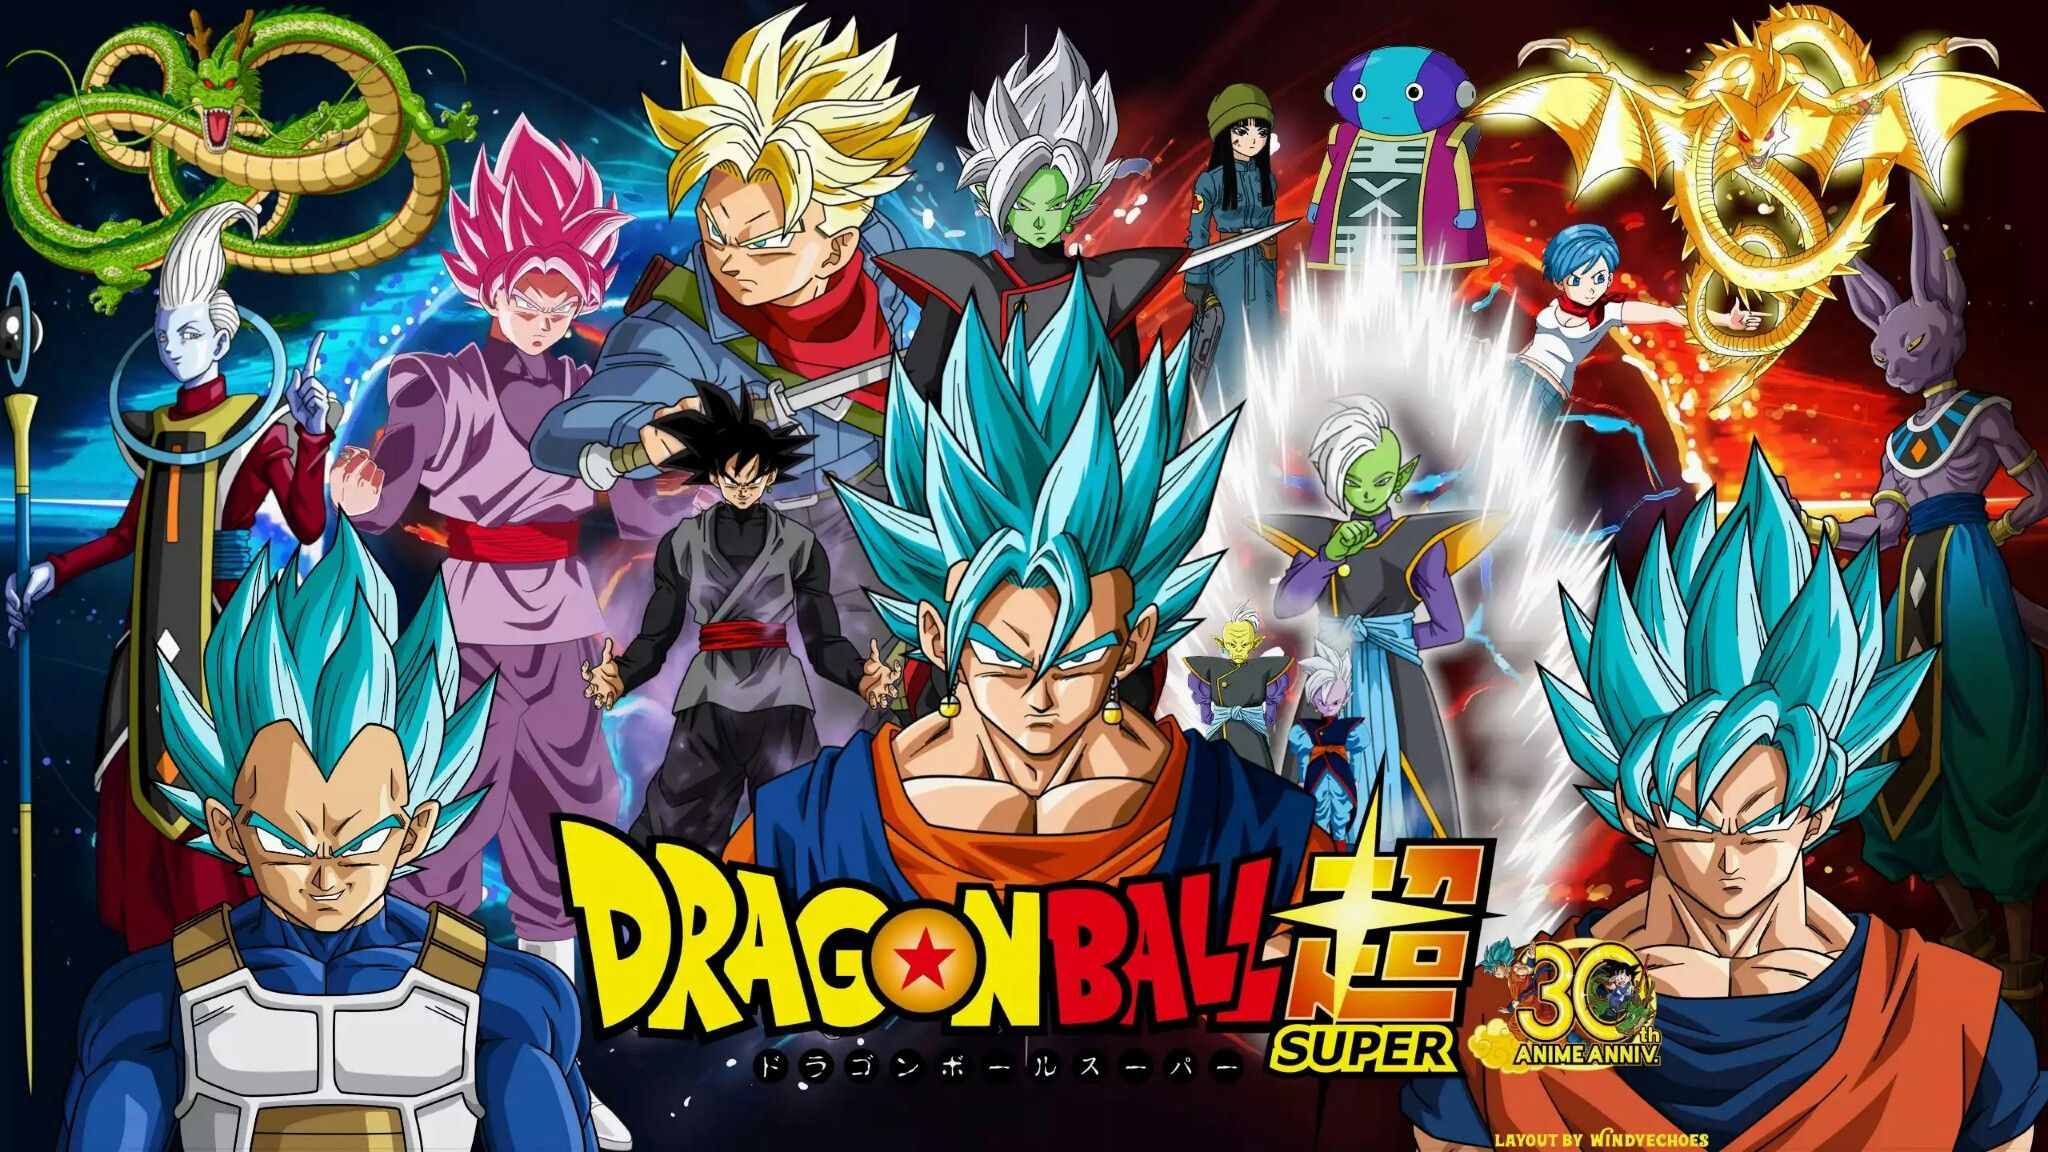 Dragon Ball Super Wallpapers Image By Ashley Lorrens On Dragon